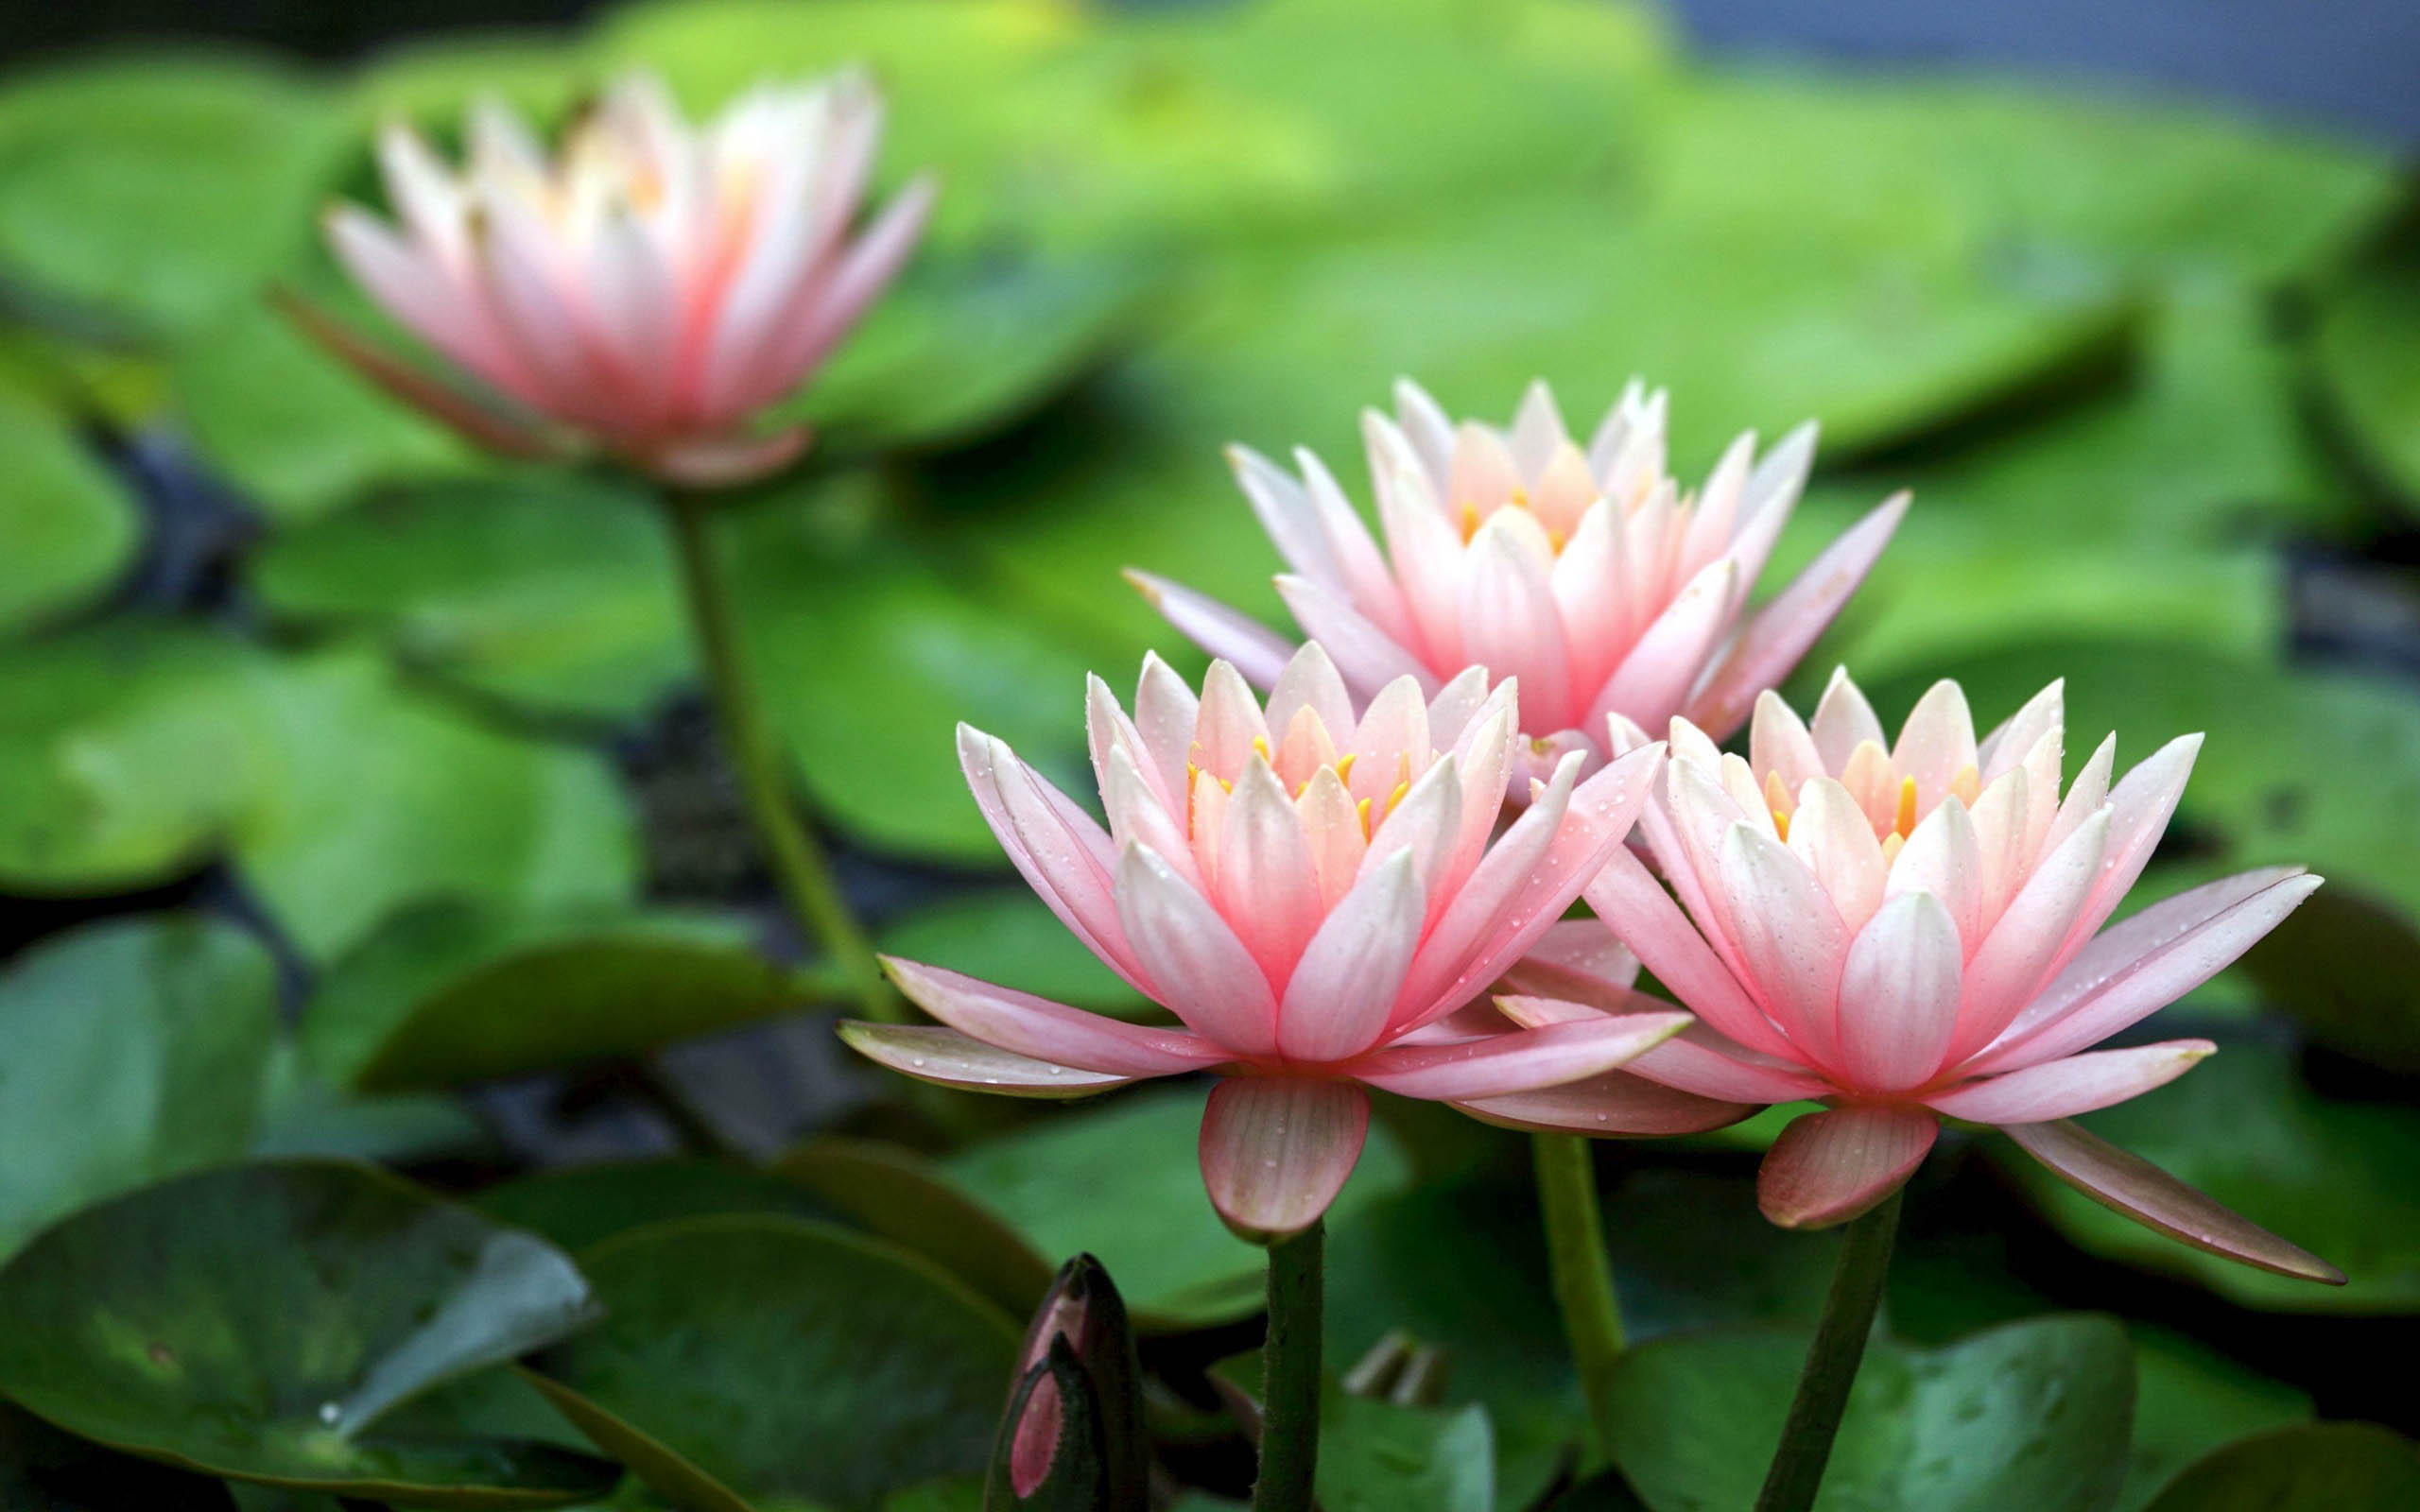 Lotus Flower Beautiful High Quality HD Wallpapers   All HD Wallpapers Lotus Flower Beautiful High Quality HD Wallpapers